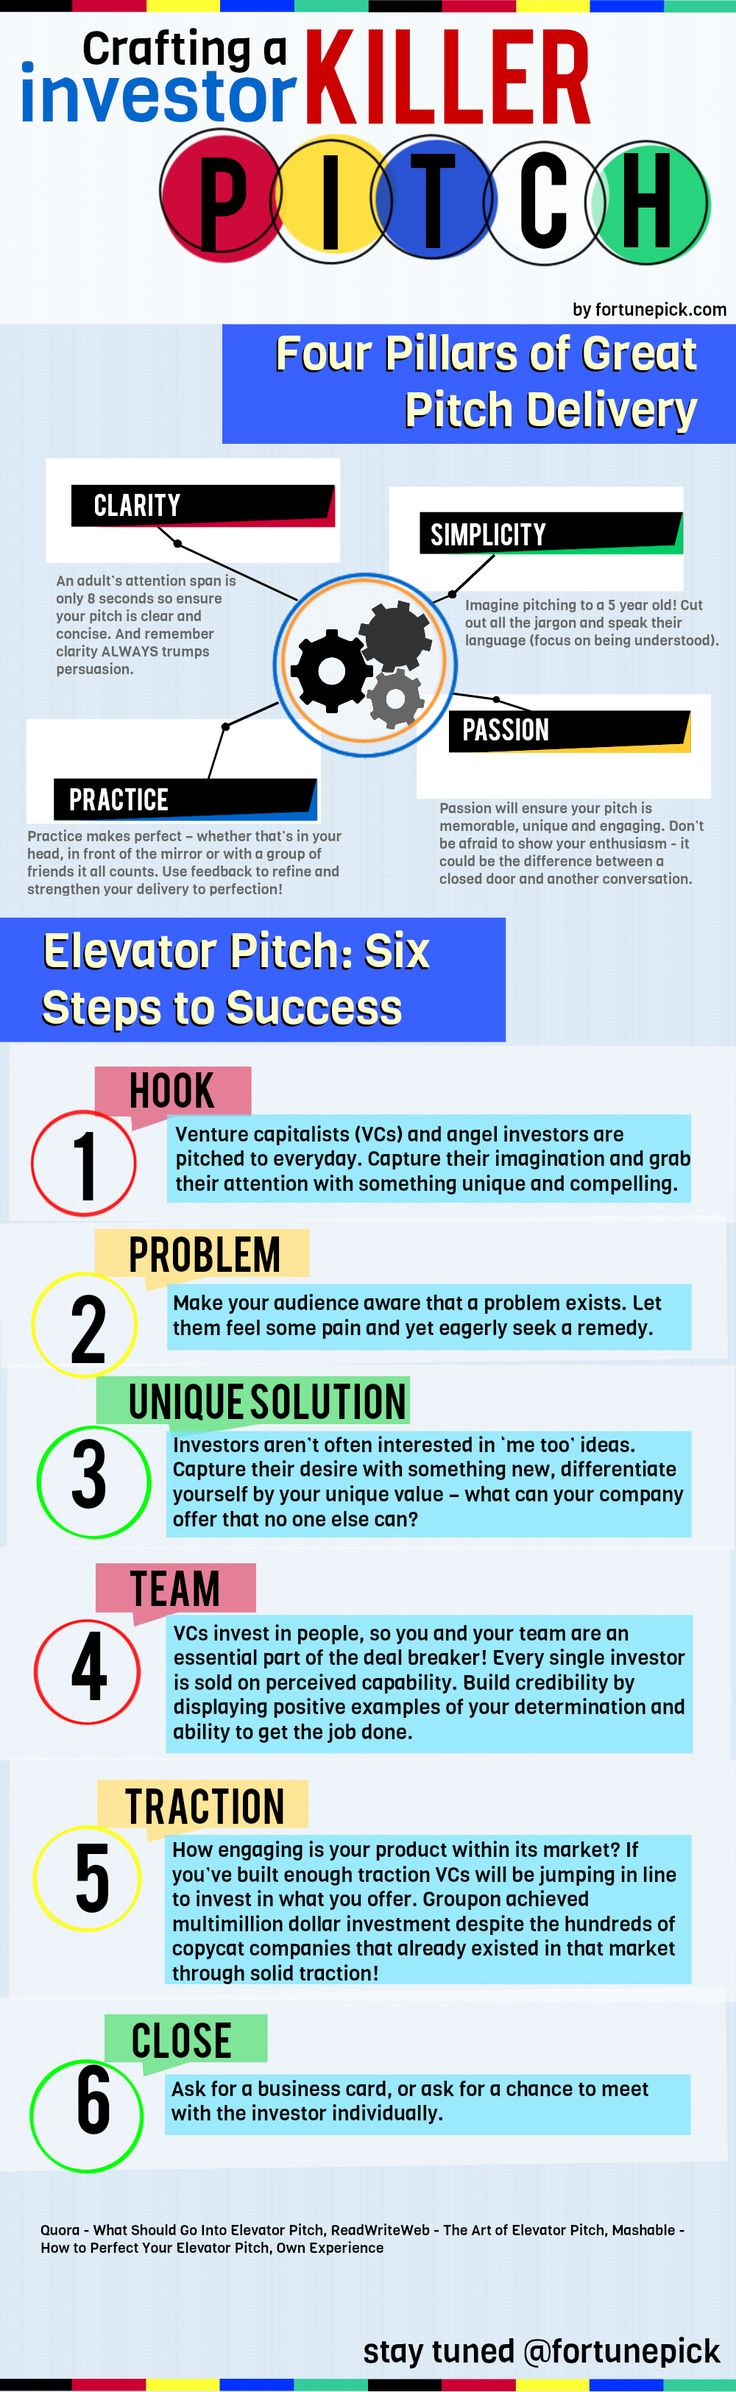 Infographic - How To Craft A Killer Startup Investor Pitch. As a startup, your ability to get investors excited about your idea is crucial to your success. Your ability to communicate what your startup does directly determines how people will respond to your business. If you're at the beginning stages of promoting your startup, you're in luck. The following infographic outlines the pillars of a great startup pitch, and the six steps you'll need to take to craft that successful pitch!